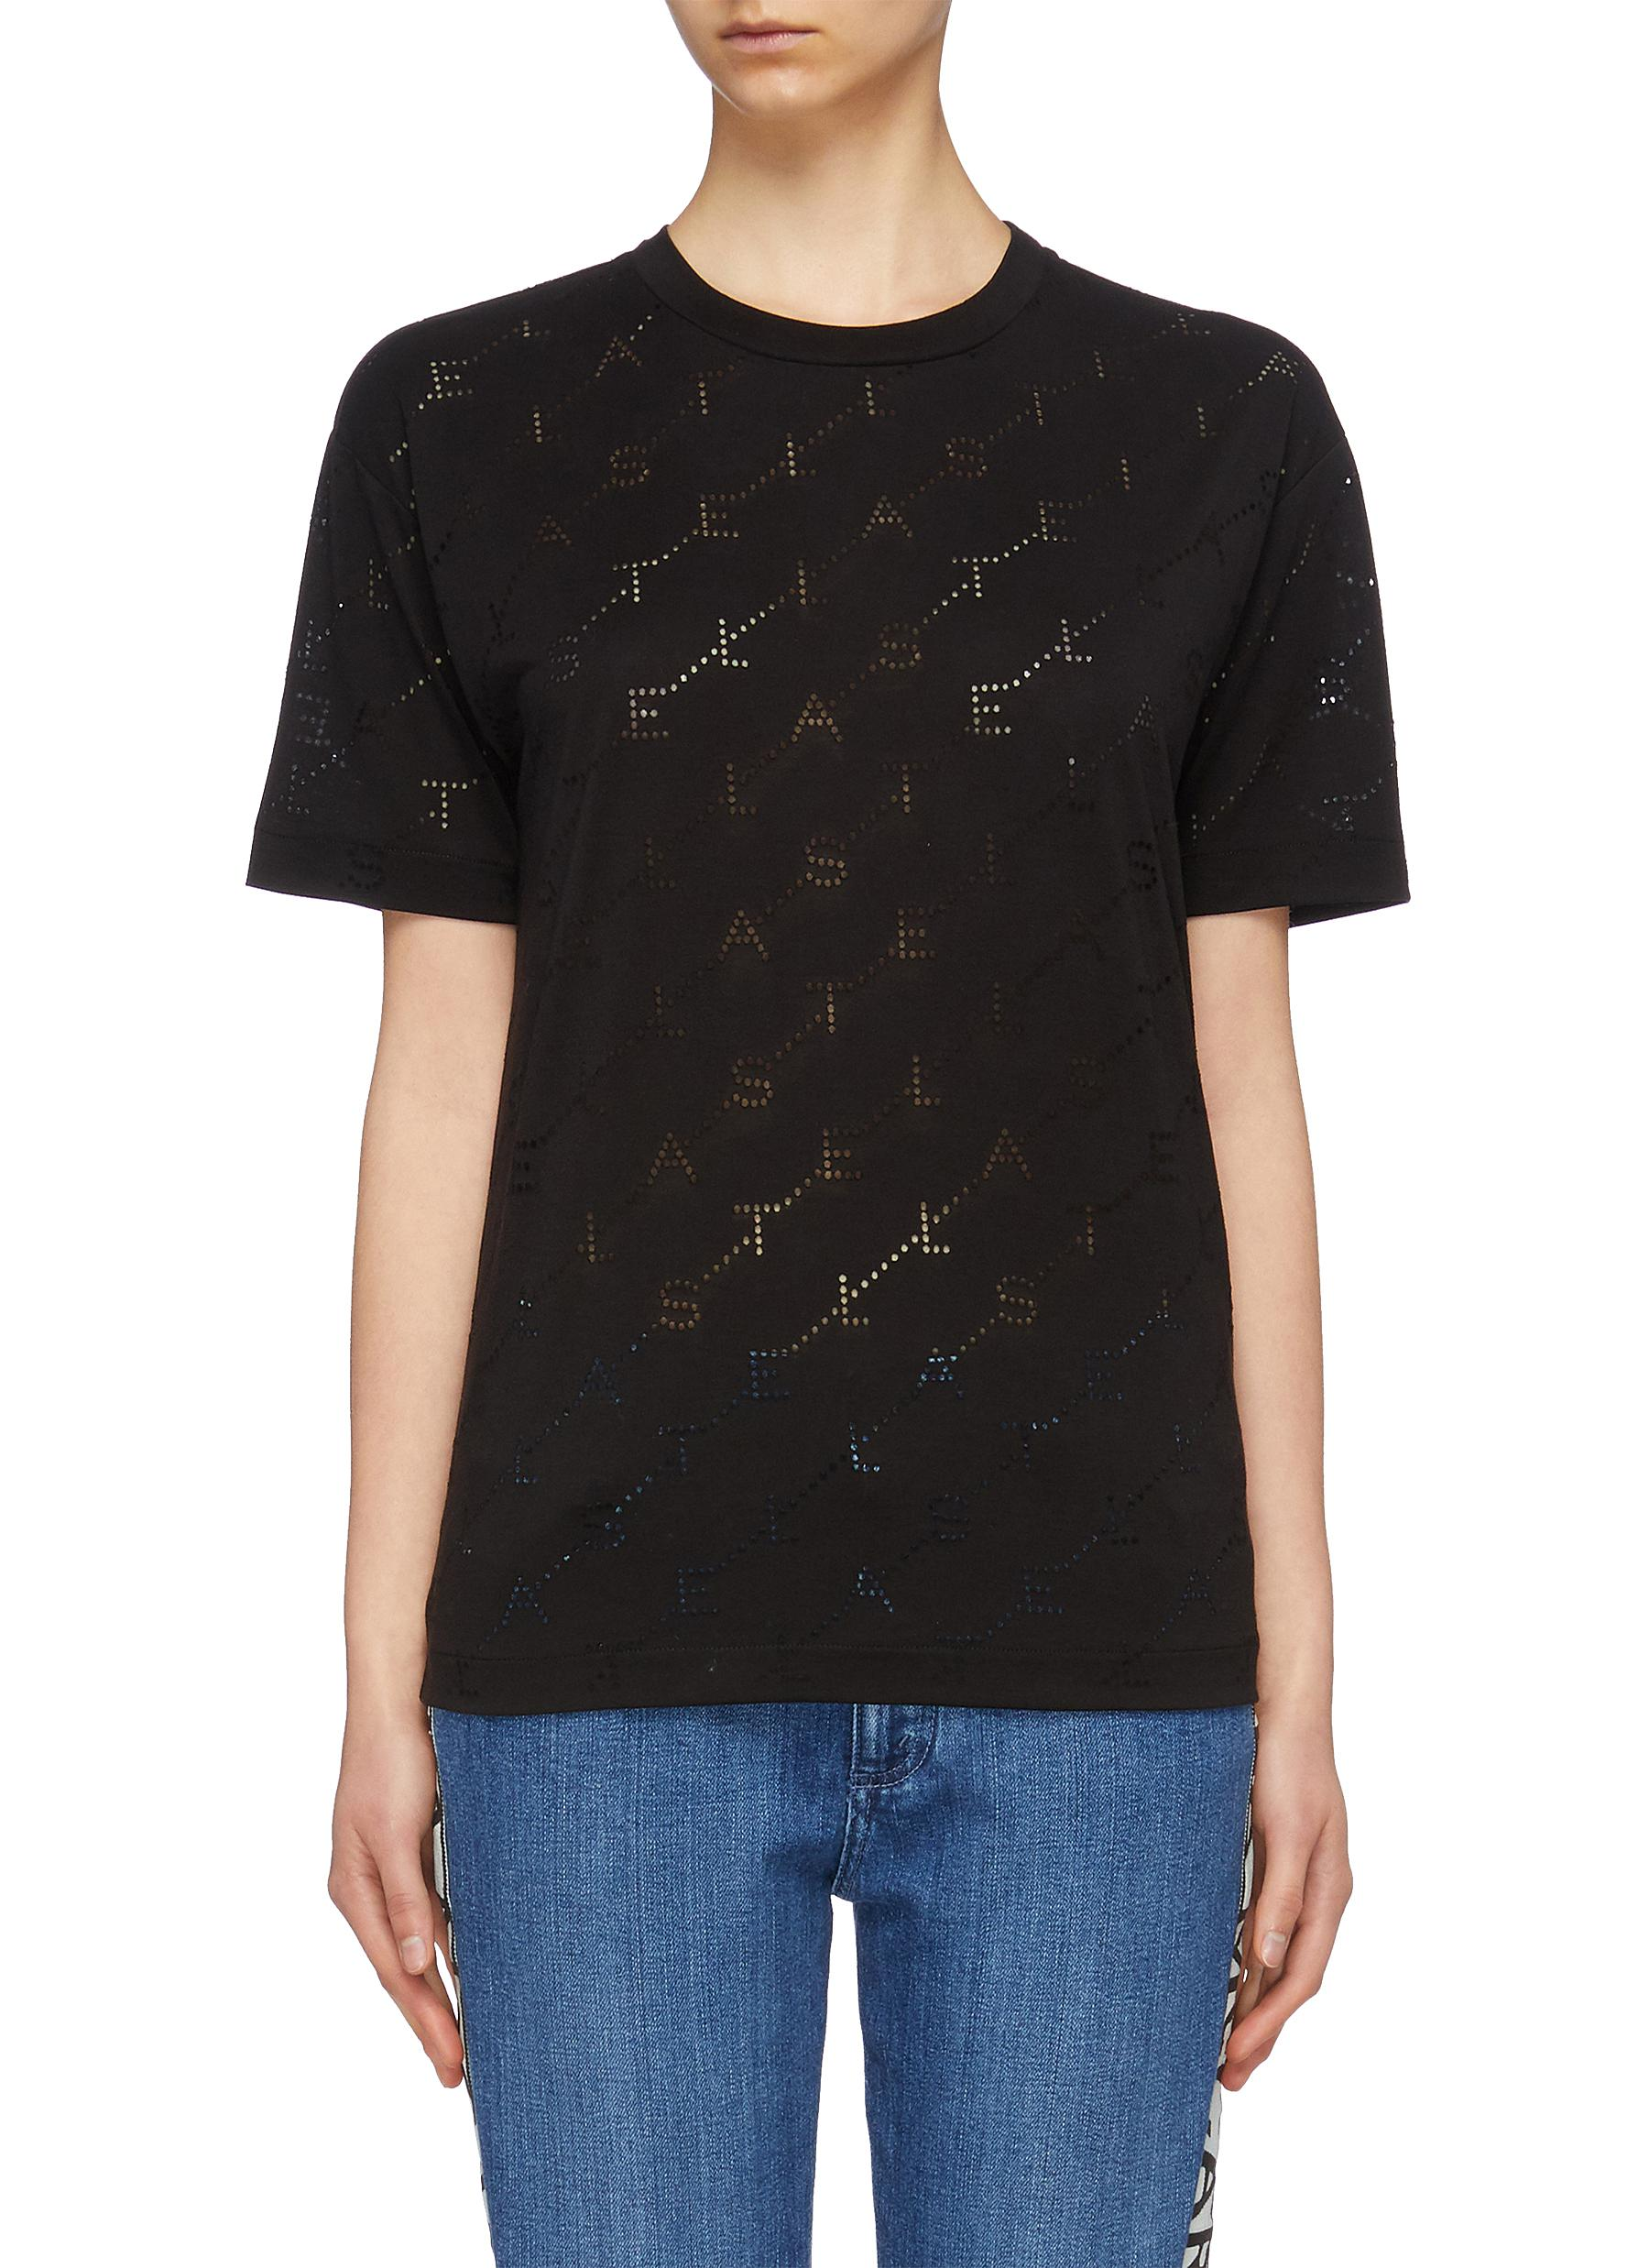 Cutout monogram T-shirt by Stella Mccartney